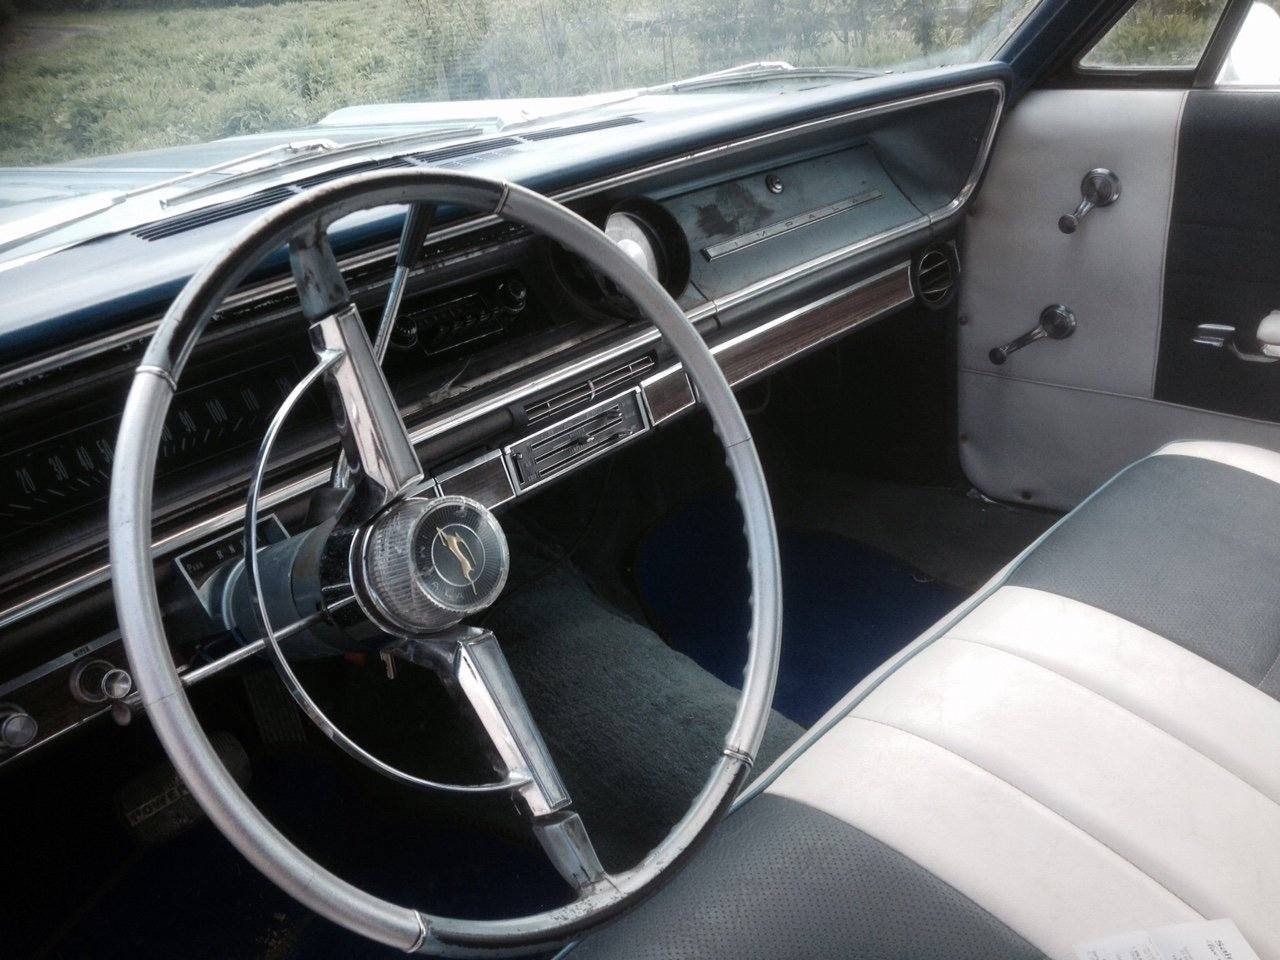 1965 IMPALA V8 AUTO TEXAS CAR IN UK V5 For Sale (picture 4 of 6)